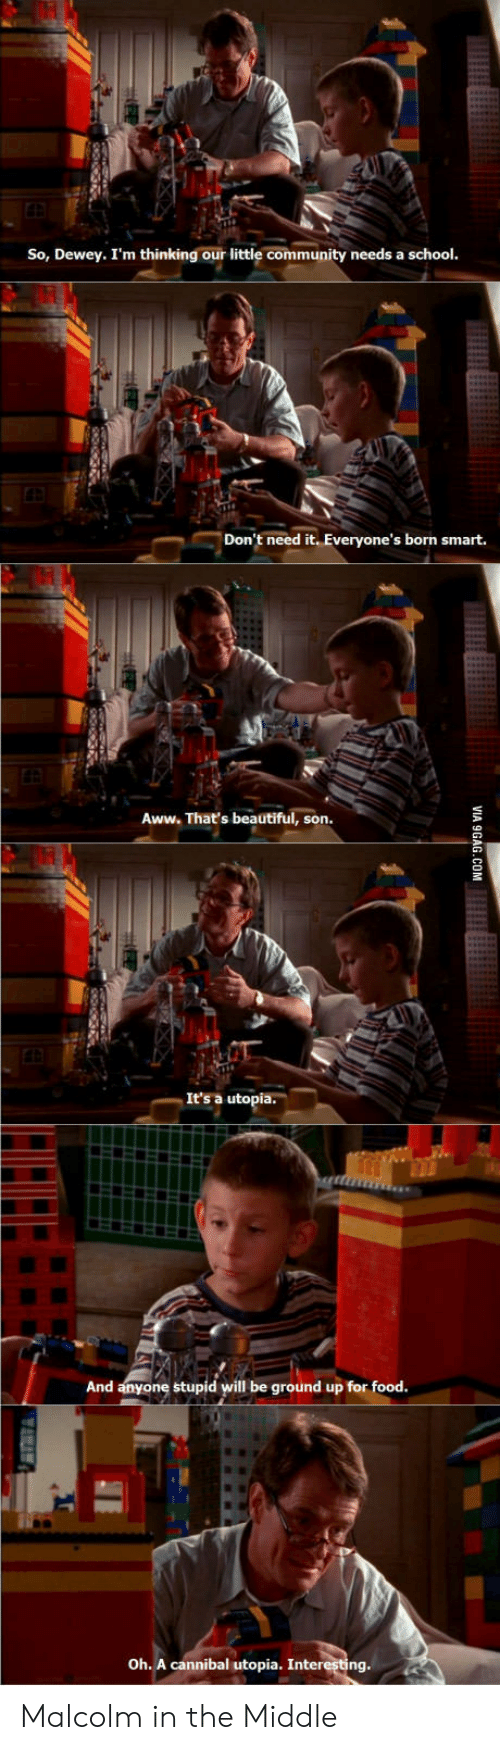 Malcolm in the Middle: So, Dewey. I'm thinking our little community needs a school  tu  Don't need it. Everyone's born smart.  Aww. That's beautiful, son  It's a utopia.  And anyone stupid will be ground up for food  Oh. A cannibal utopia. Interesting. Malcolm in the Middle